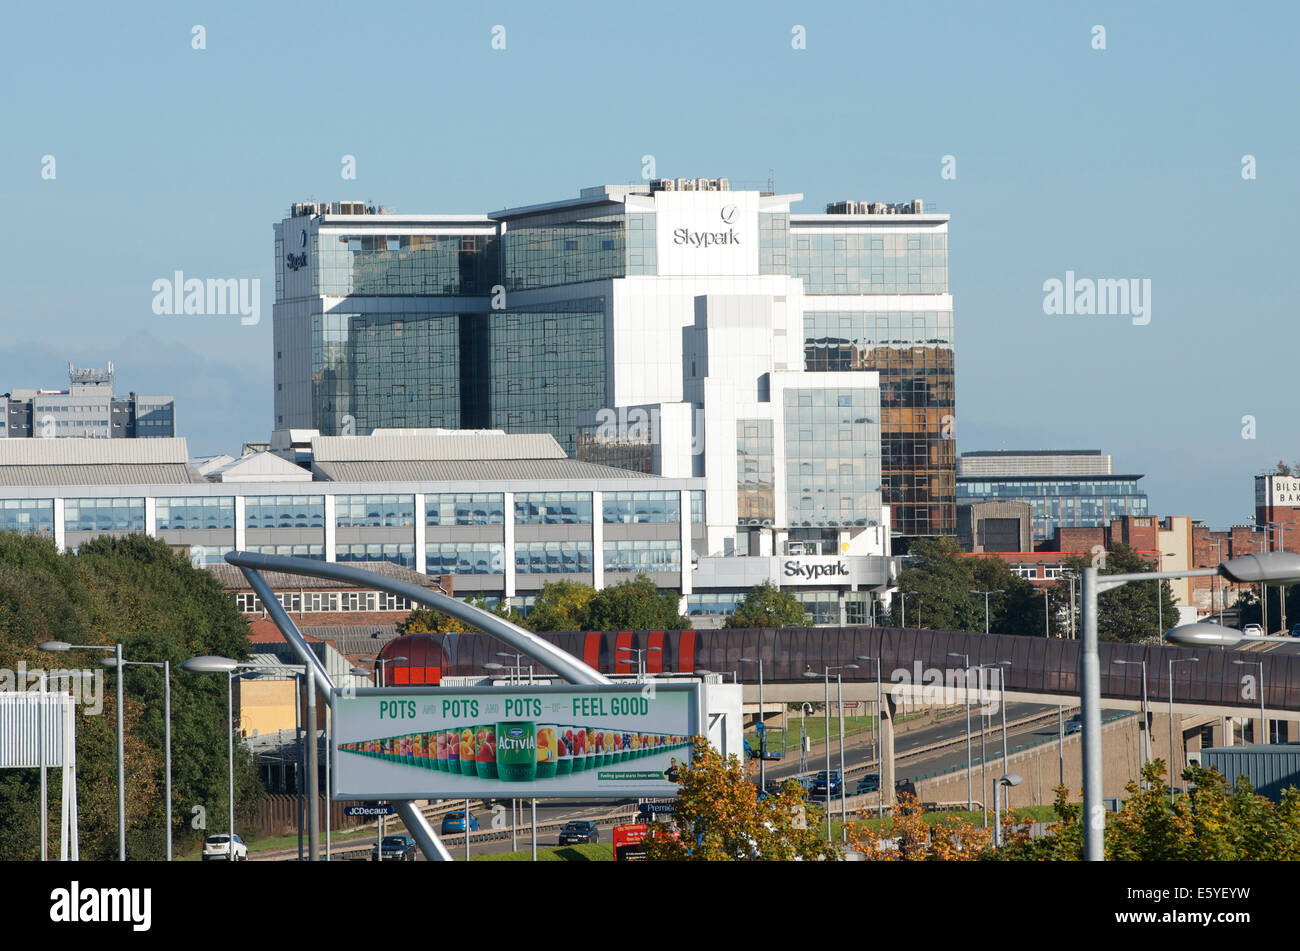 The Skypark building in Finnieston behind the A814 Pointhouse Road, Glasgow. - Stock Image